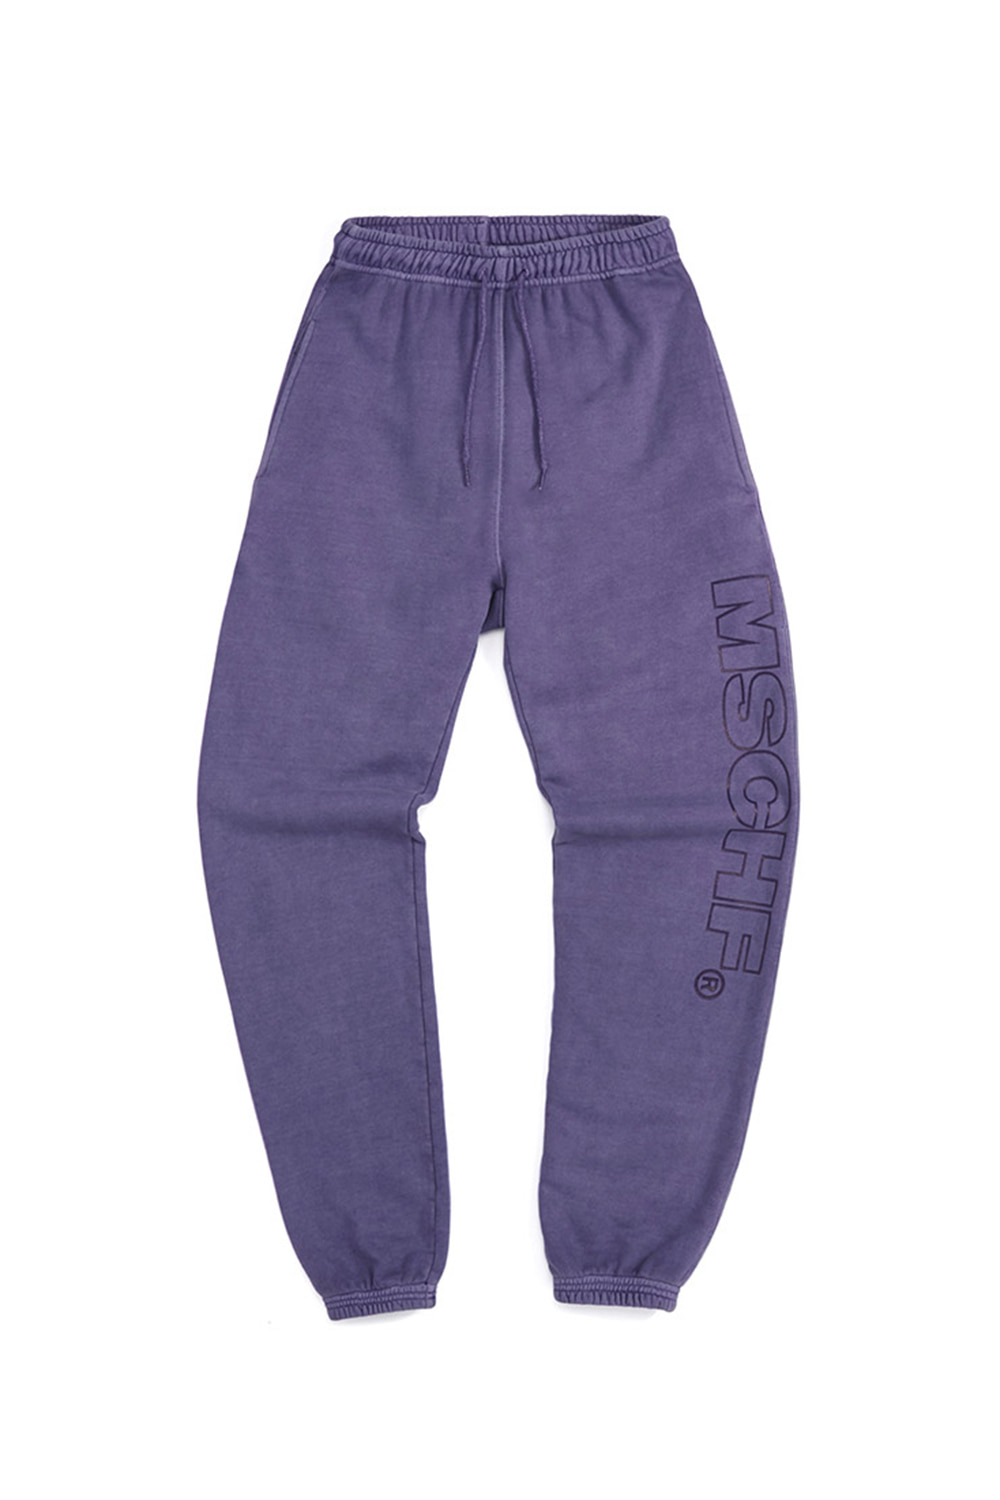 GARMENT DYED TRAINING PANTS_purple